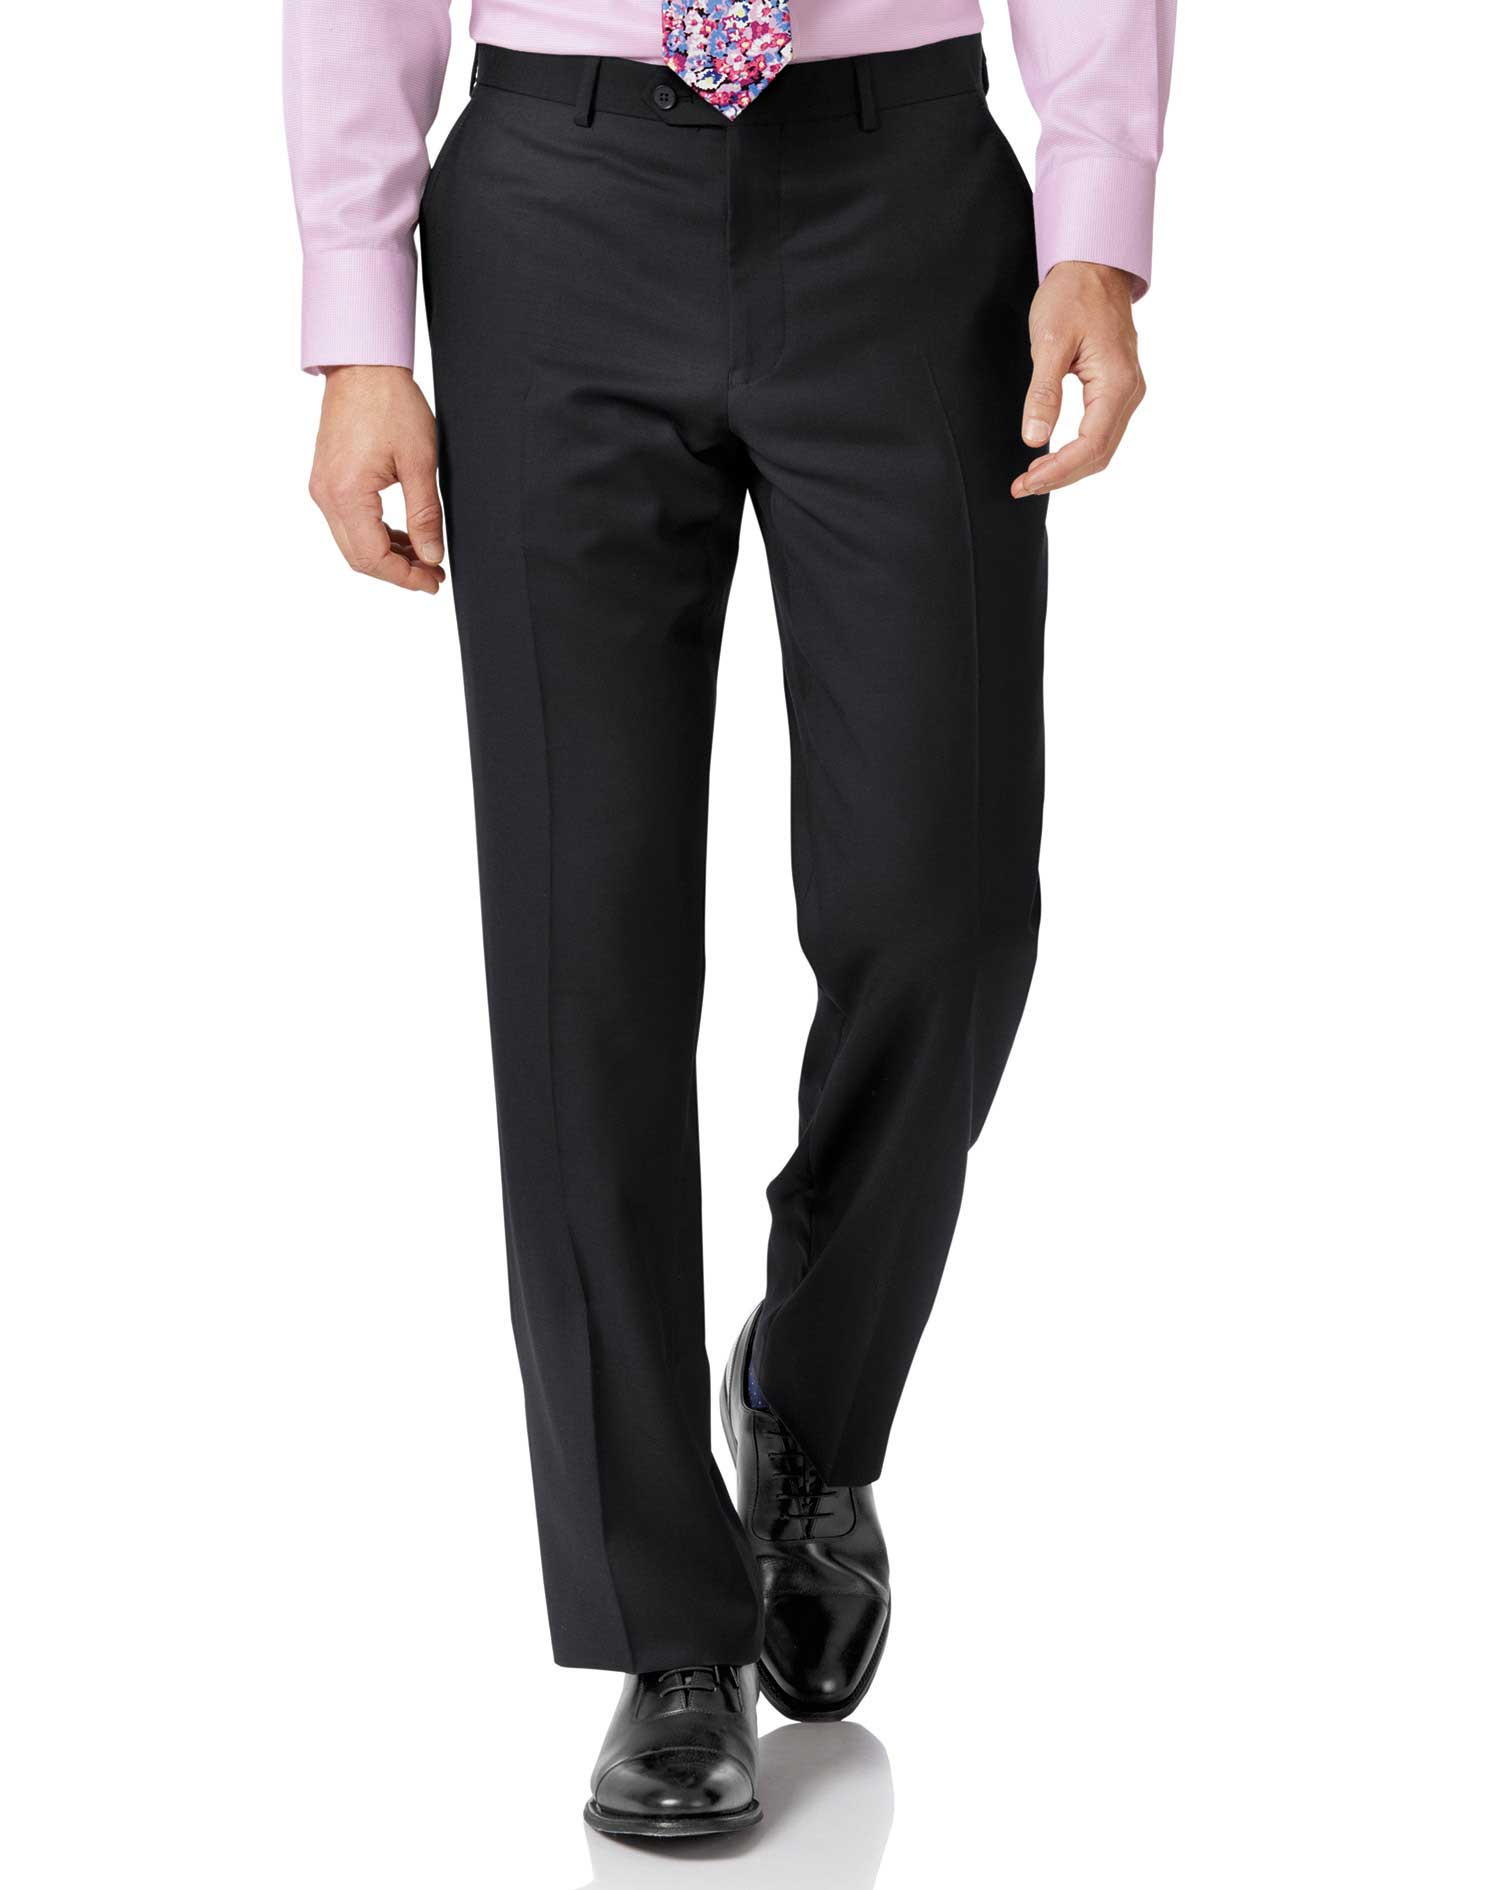 Black Classic Fit Twill Business Suit Trousers Size W32 L32 by Charles Tyrwhitt